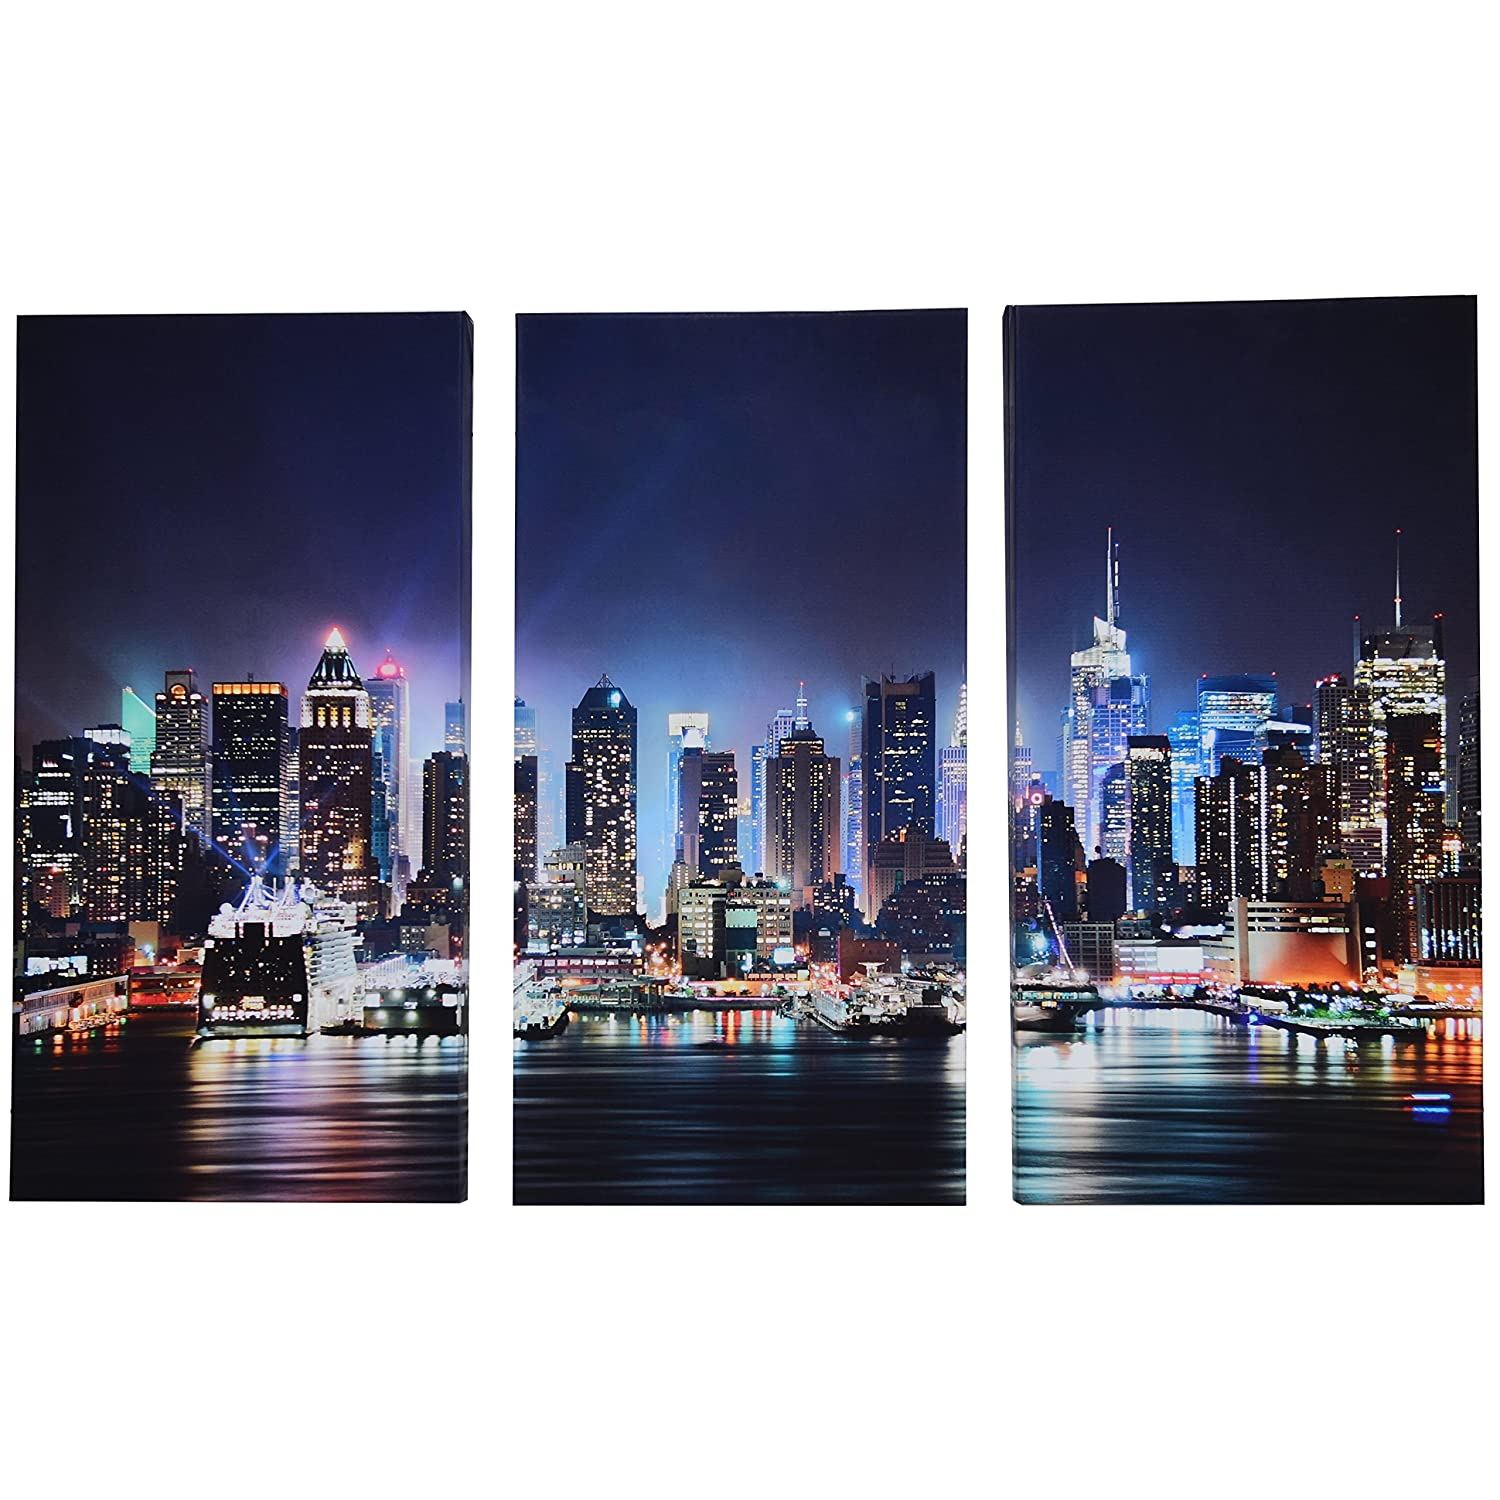 "Best 3 Panel Canvas Wall Art for Men & Women, Modern New York City Skyline Print Photograph, Hanging Decorative Painting Artwork for Kitchen, Bedroom, Office, Living Room, Home Decor Gift, 24"" x 36"""